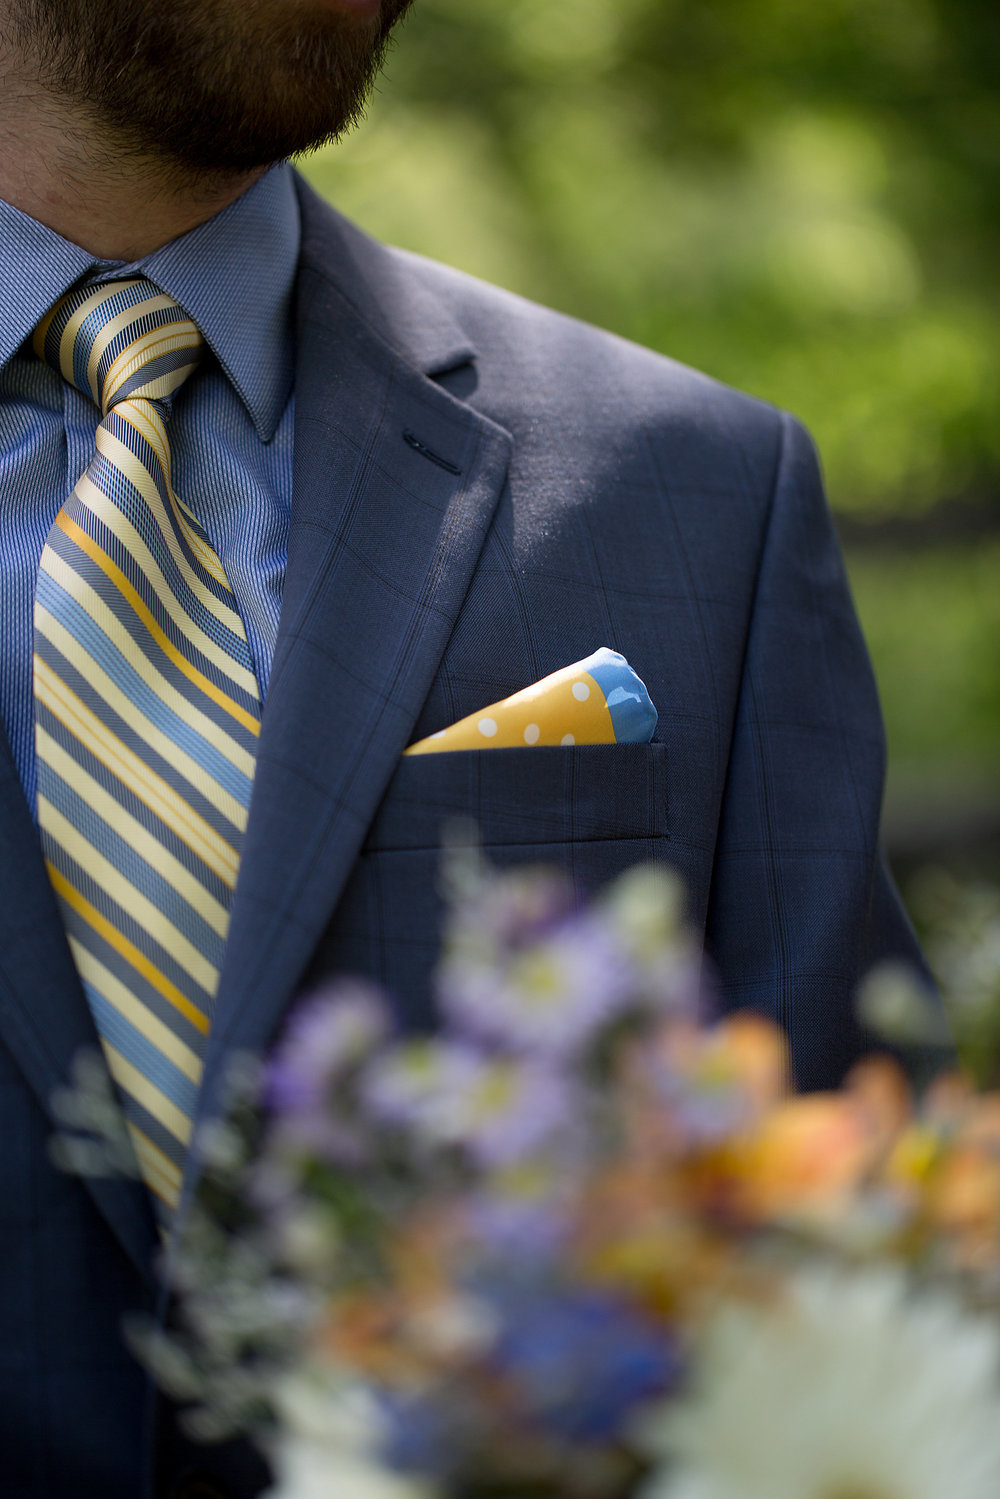 Photocredit: The Happy Couple              The fun colors and coordinating patterns of the tie and pocket square                                                                                                        make this groom's look really pop.